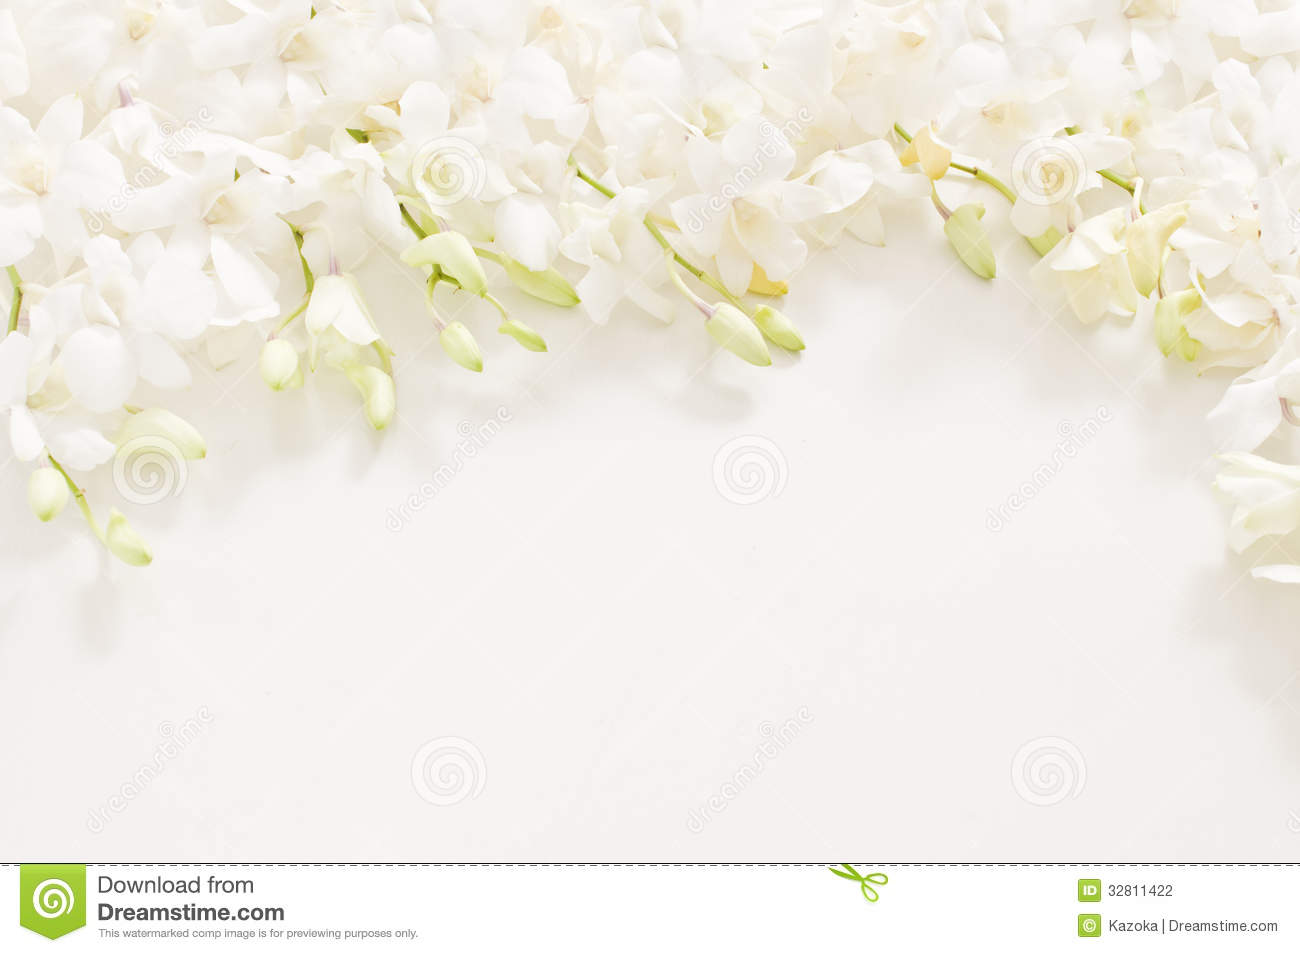 Funeral Background Pictures - WallpaperSafari